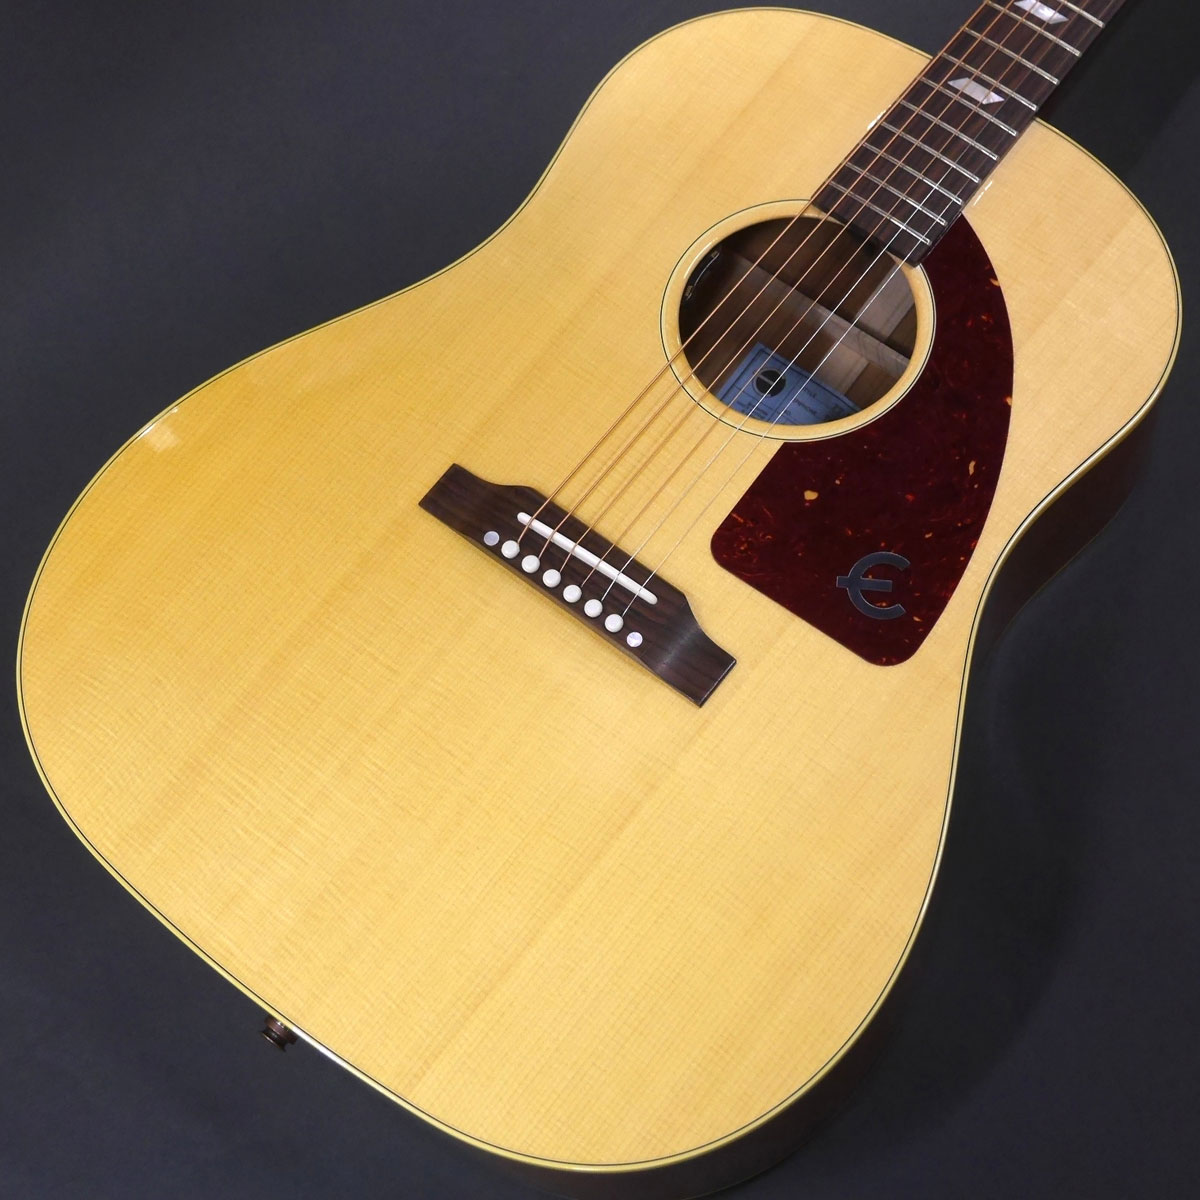 Epiphone USA / Texan AN(Antique Natural) FT79 エピフォン【S/N 20590062】【新宿店】